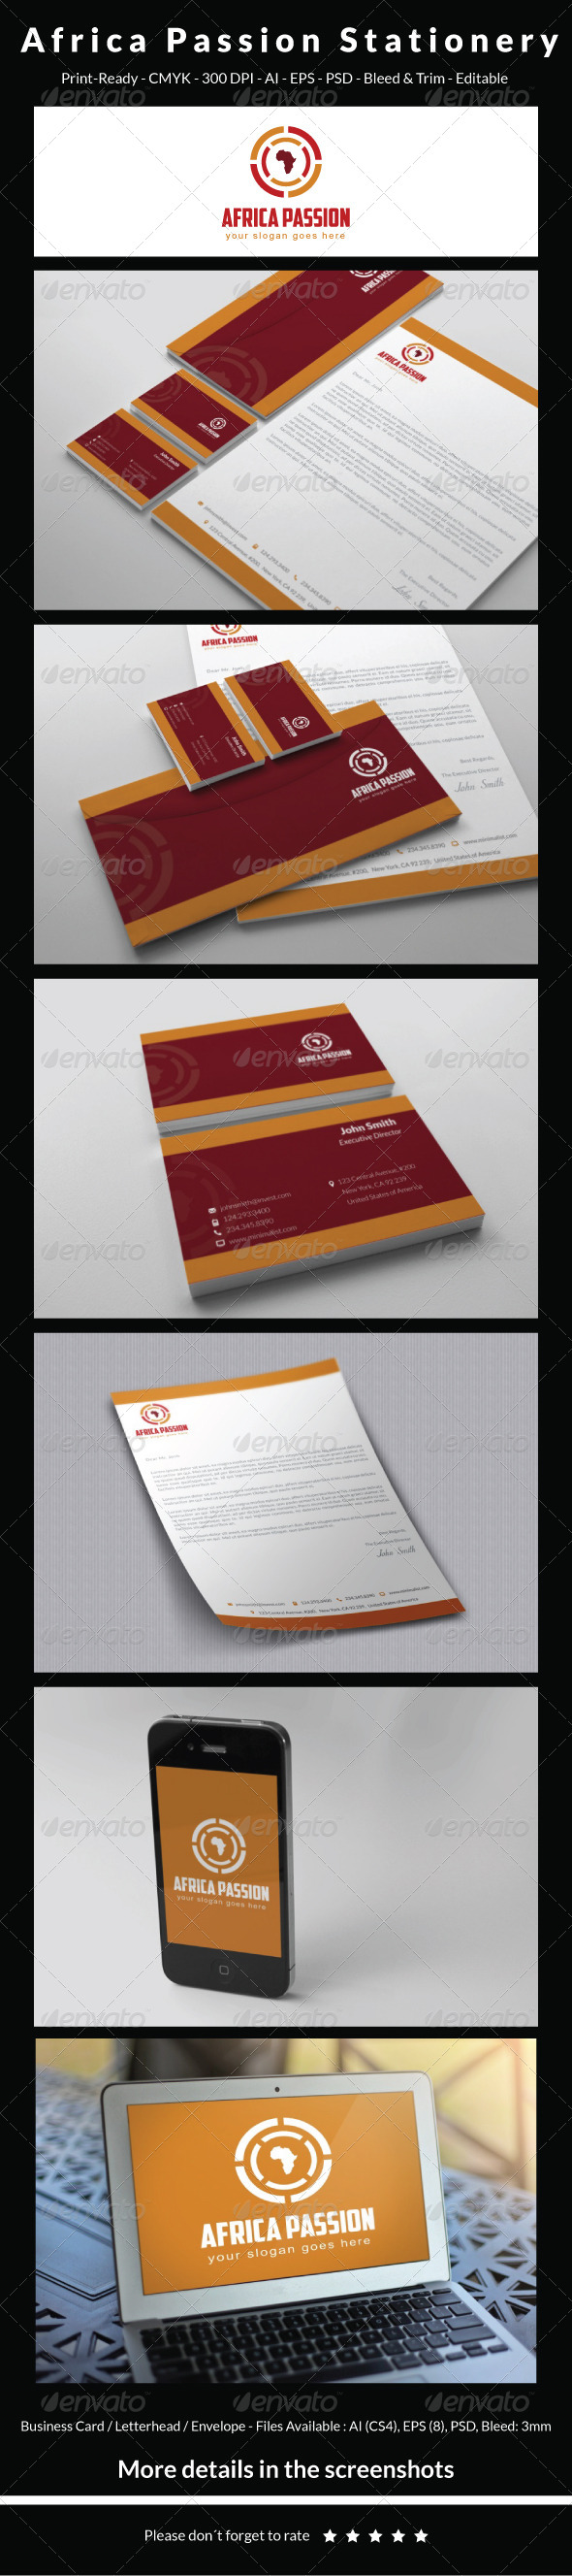 GraphicRiver Africa Passion Stationery 5395053